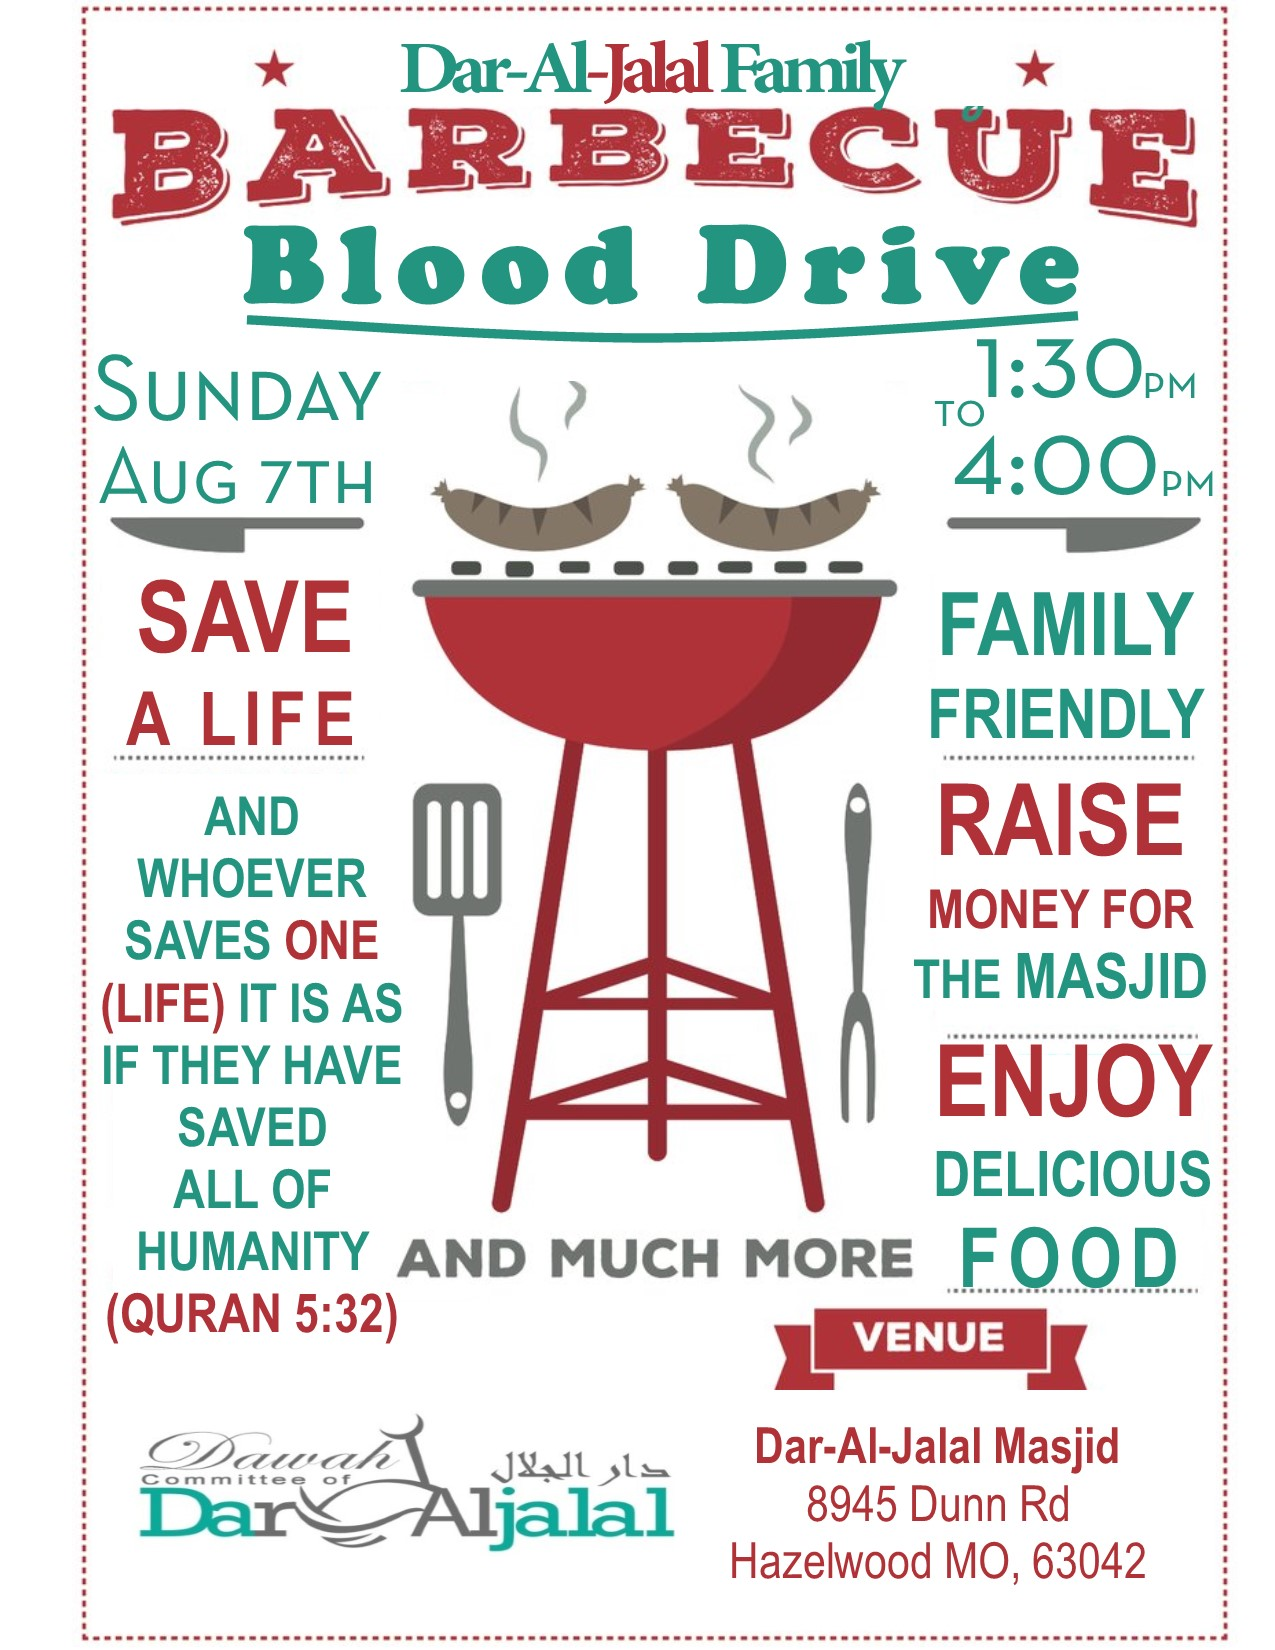 BBQ Blood Drive Flyer